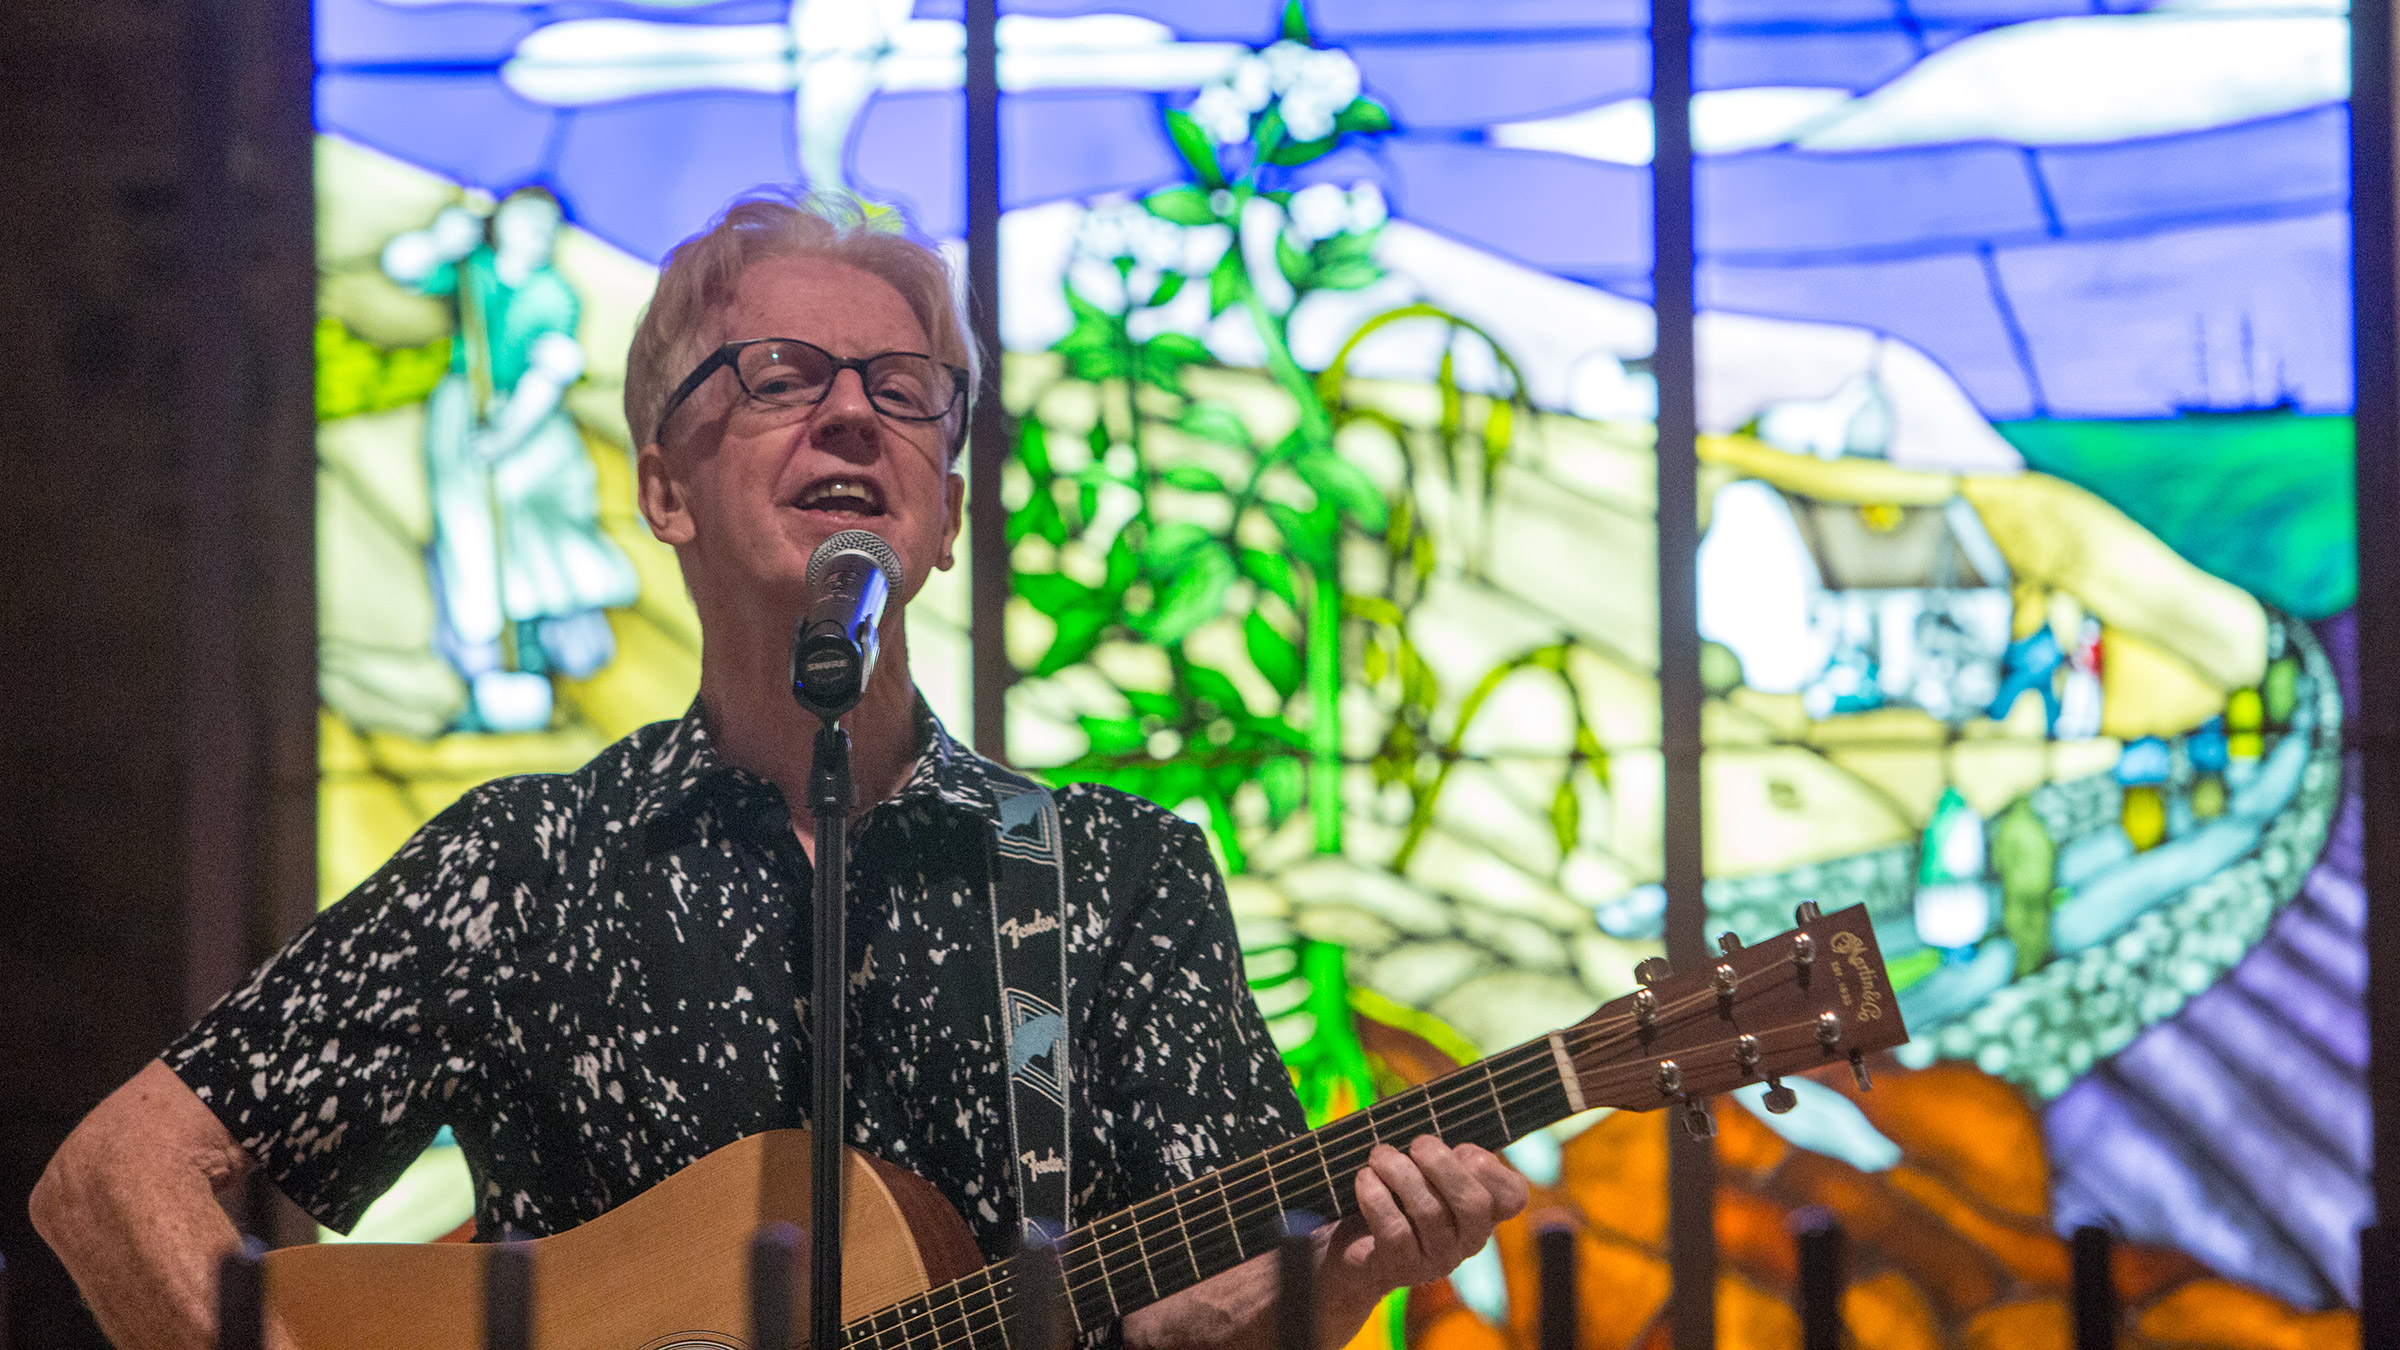 Larry Kirwin, a founding member of the Irish Musical group Black 47, performs his music and reads from his book at Ireland's Great Hunger Museum during the Rock and Read, a program that combines both music and literature, September 12, 2015 at the museum in Hamden, Conn. (For Quinnipiac University/ Michelle McLoughlin)